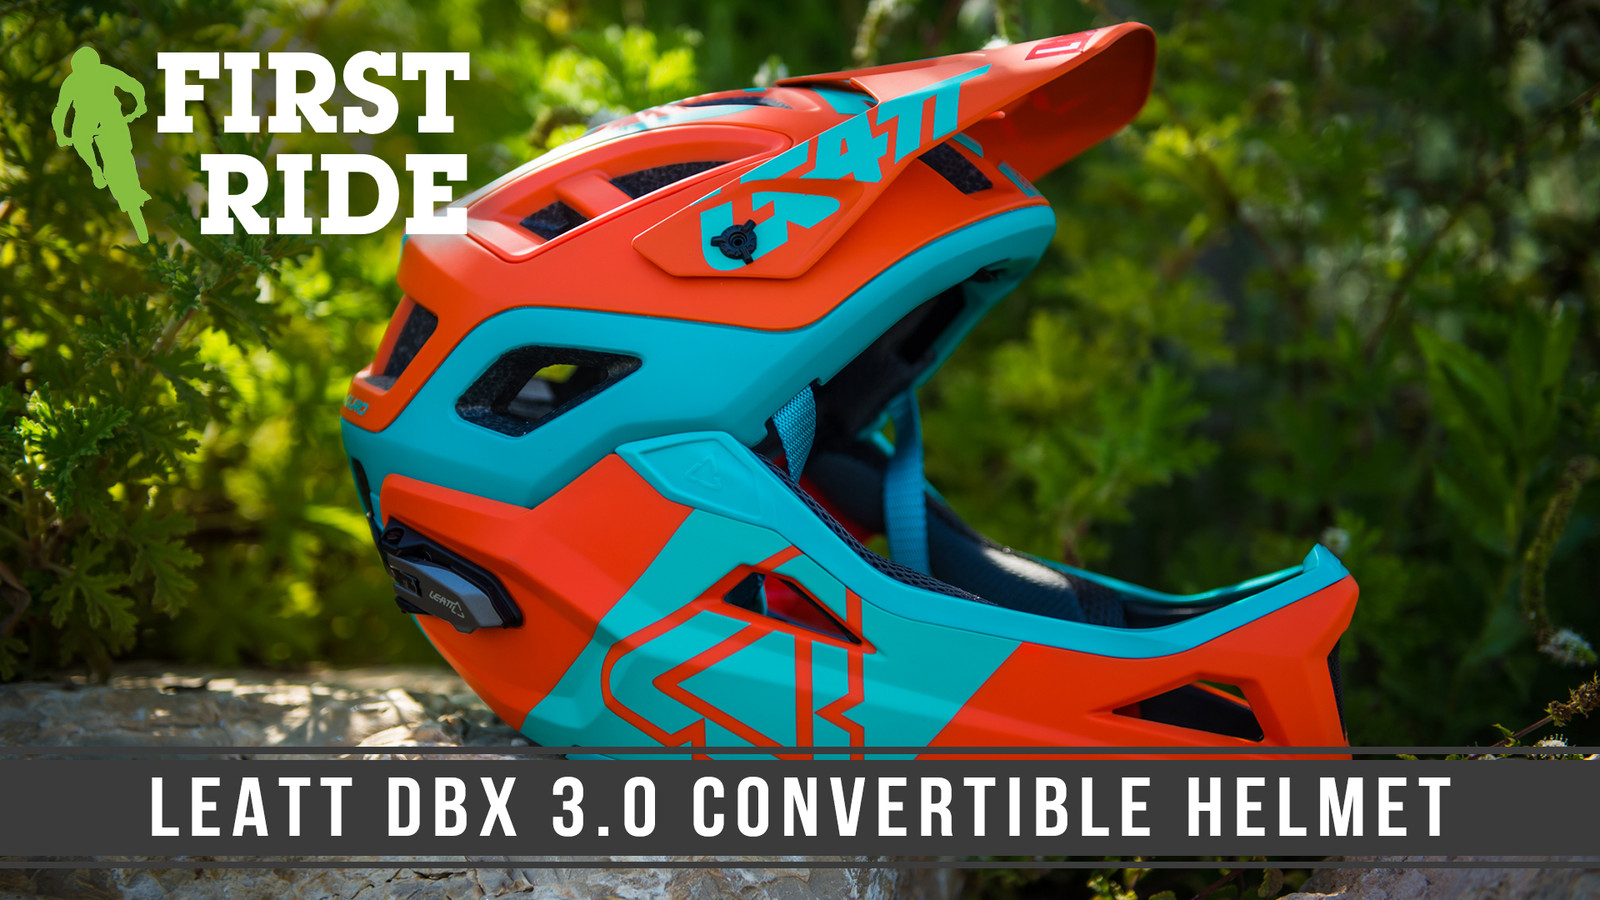 Best of Both Worlds? We Ride the New Leatt DBX 3.0 Convertible Helmet